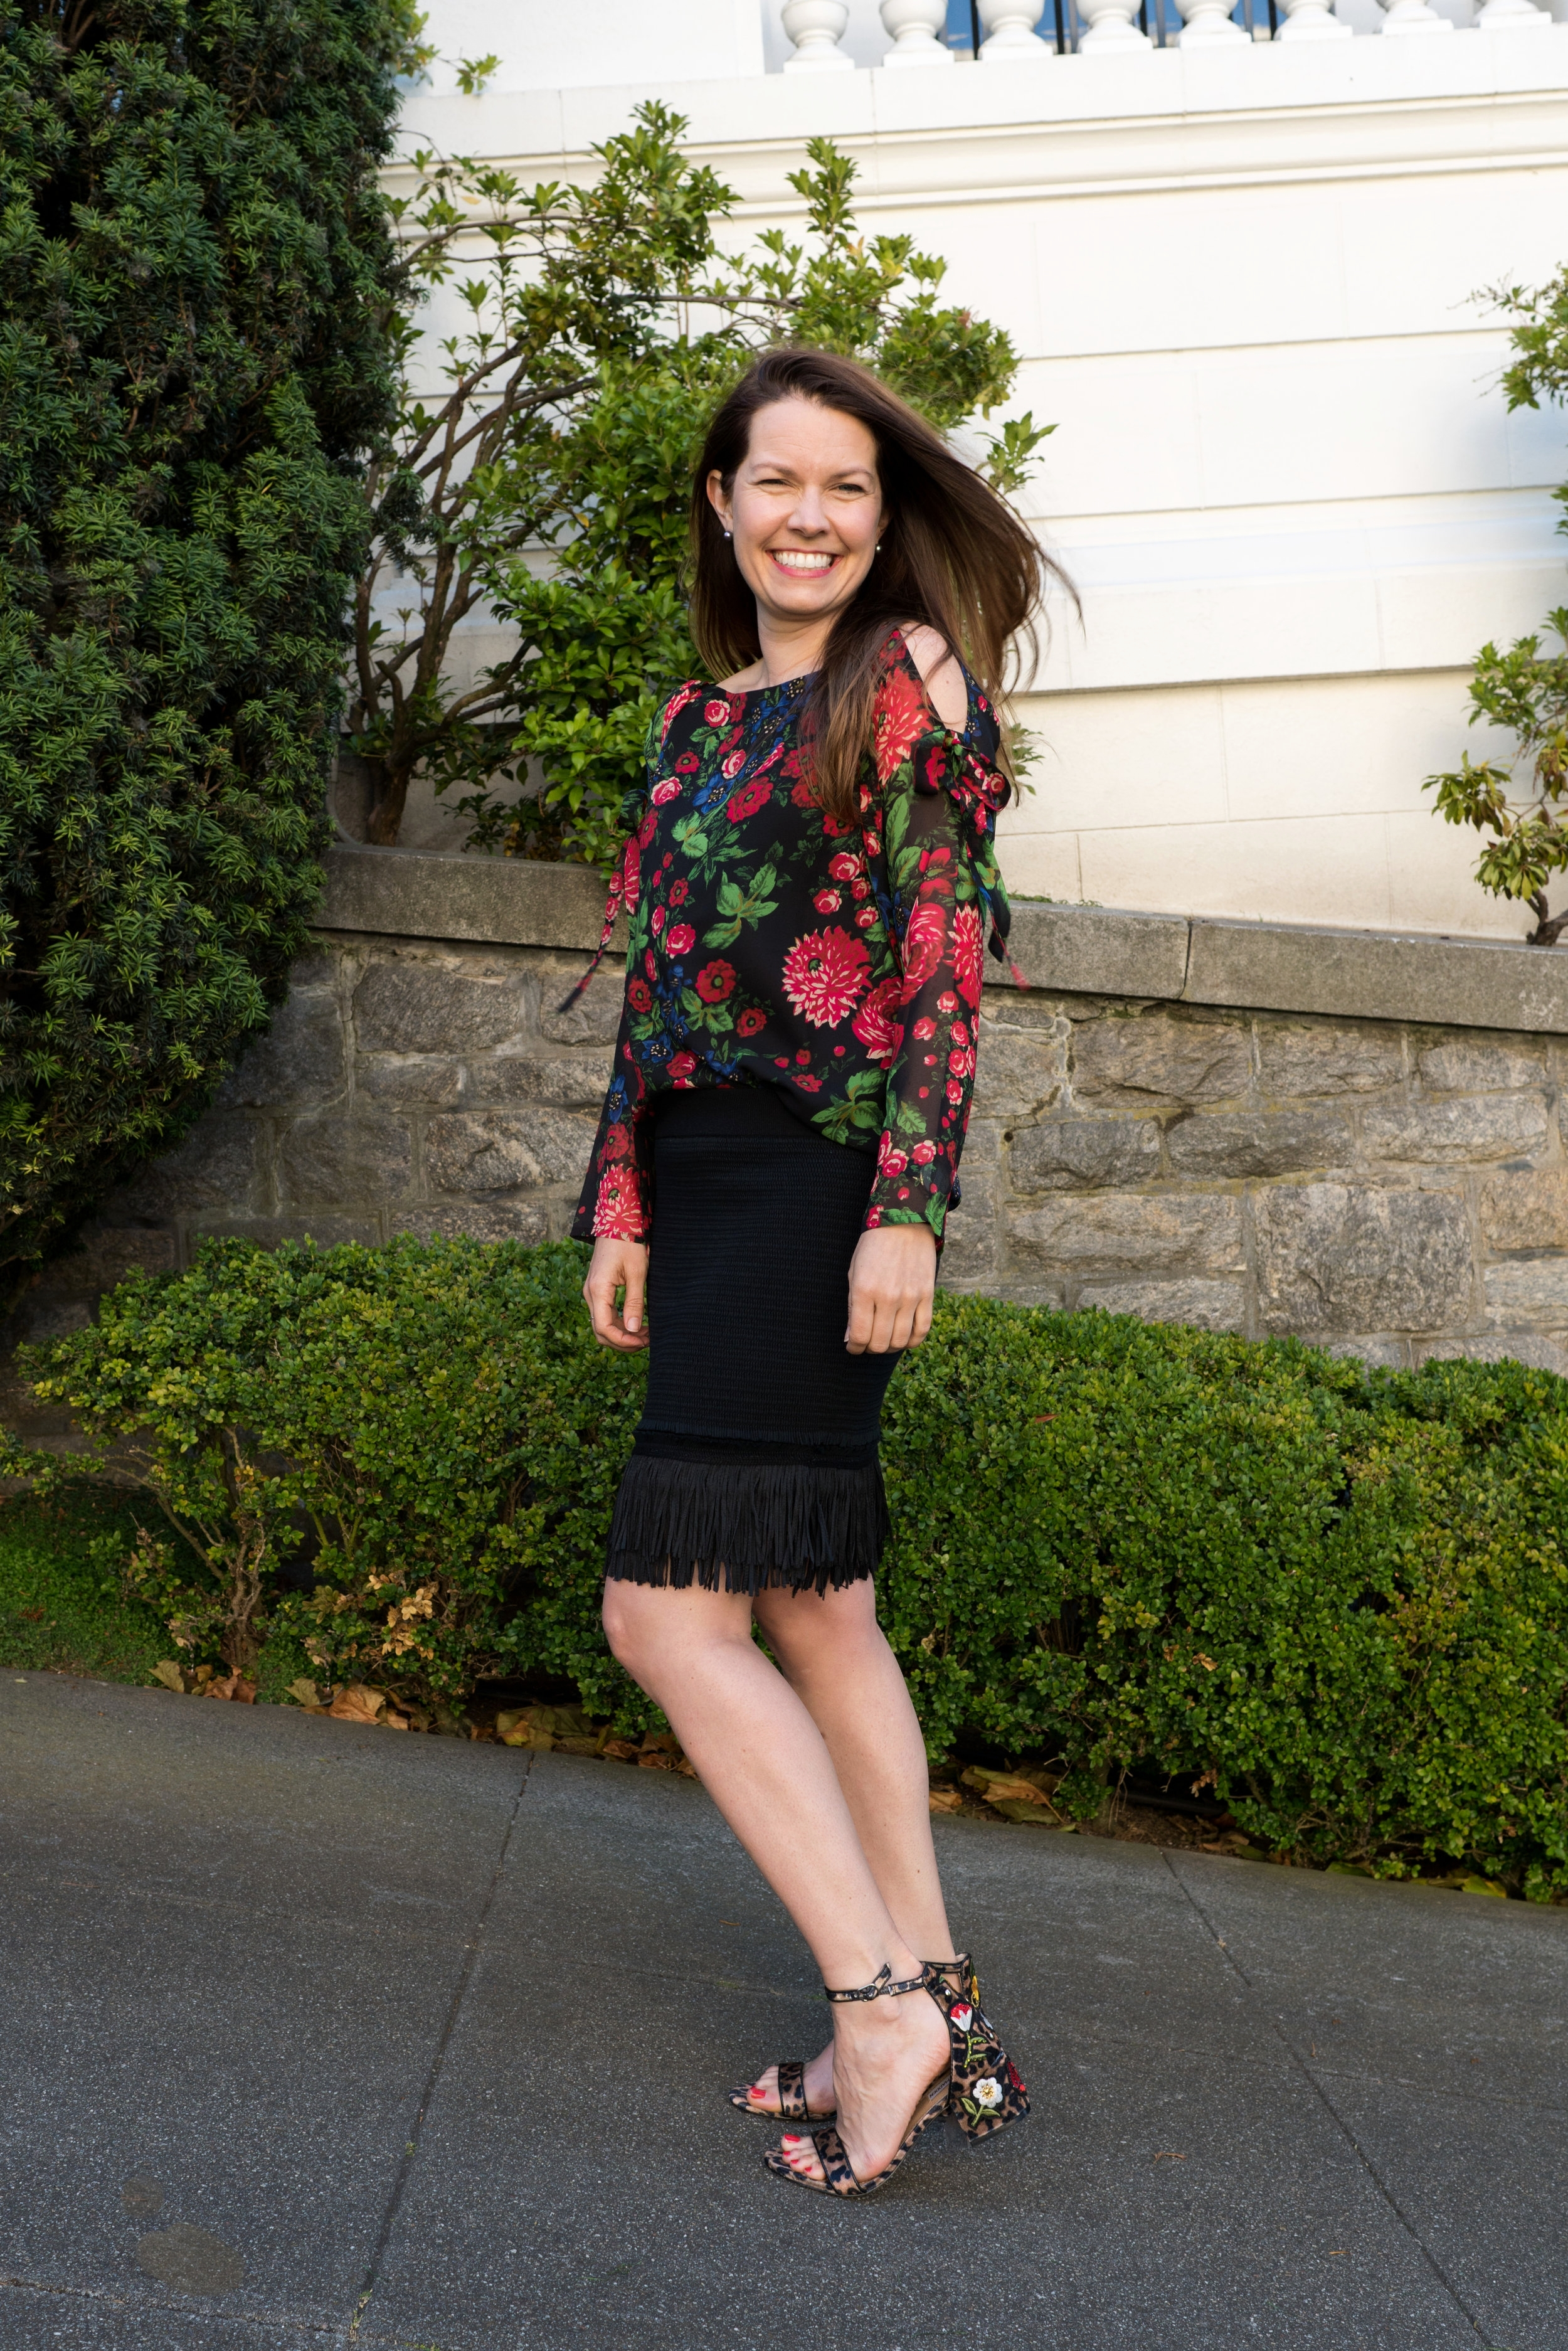 Outfit Details: Club Monaco  Fredrikah Fringe Sweater Skirt $129 (on sale),  Dolice Silk Blouse  $69 (on sale) and  Steve Madden Leopard Sandals  ($39.97)